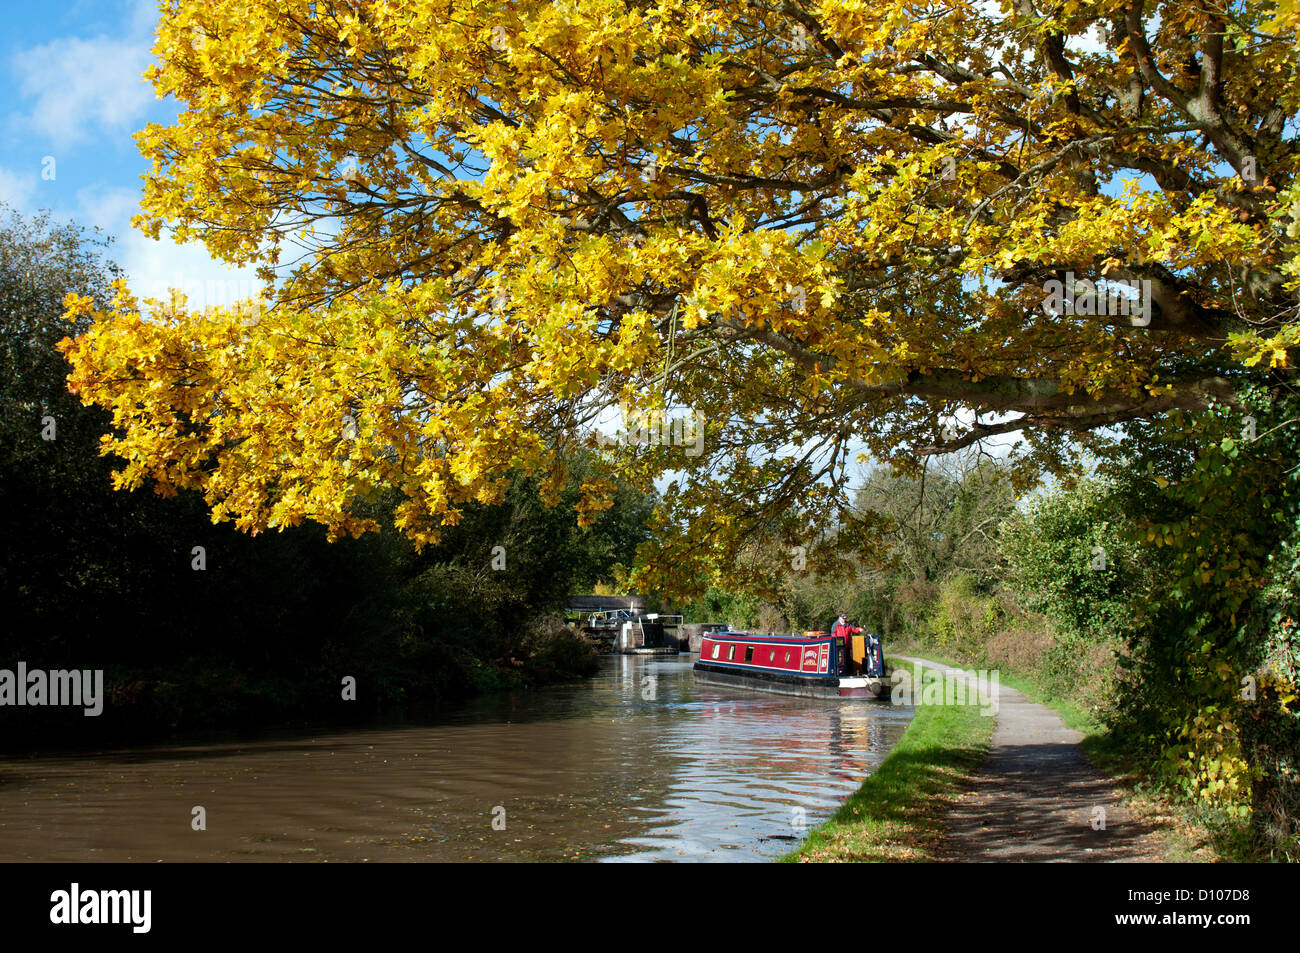 Narrowboat on the Grand Union Canal at Hatton Locks in autumn - Stock Image